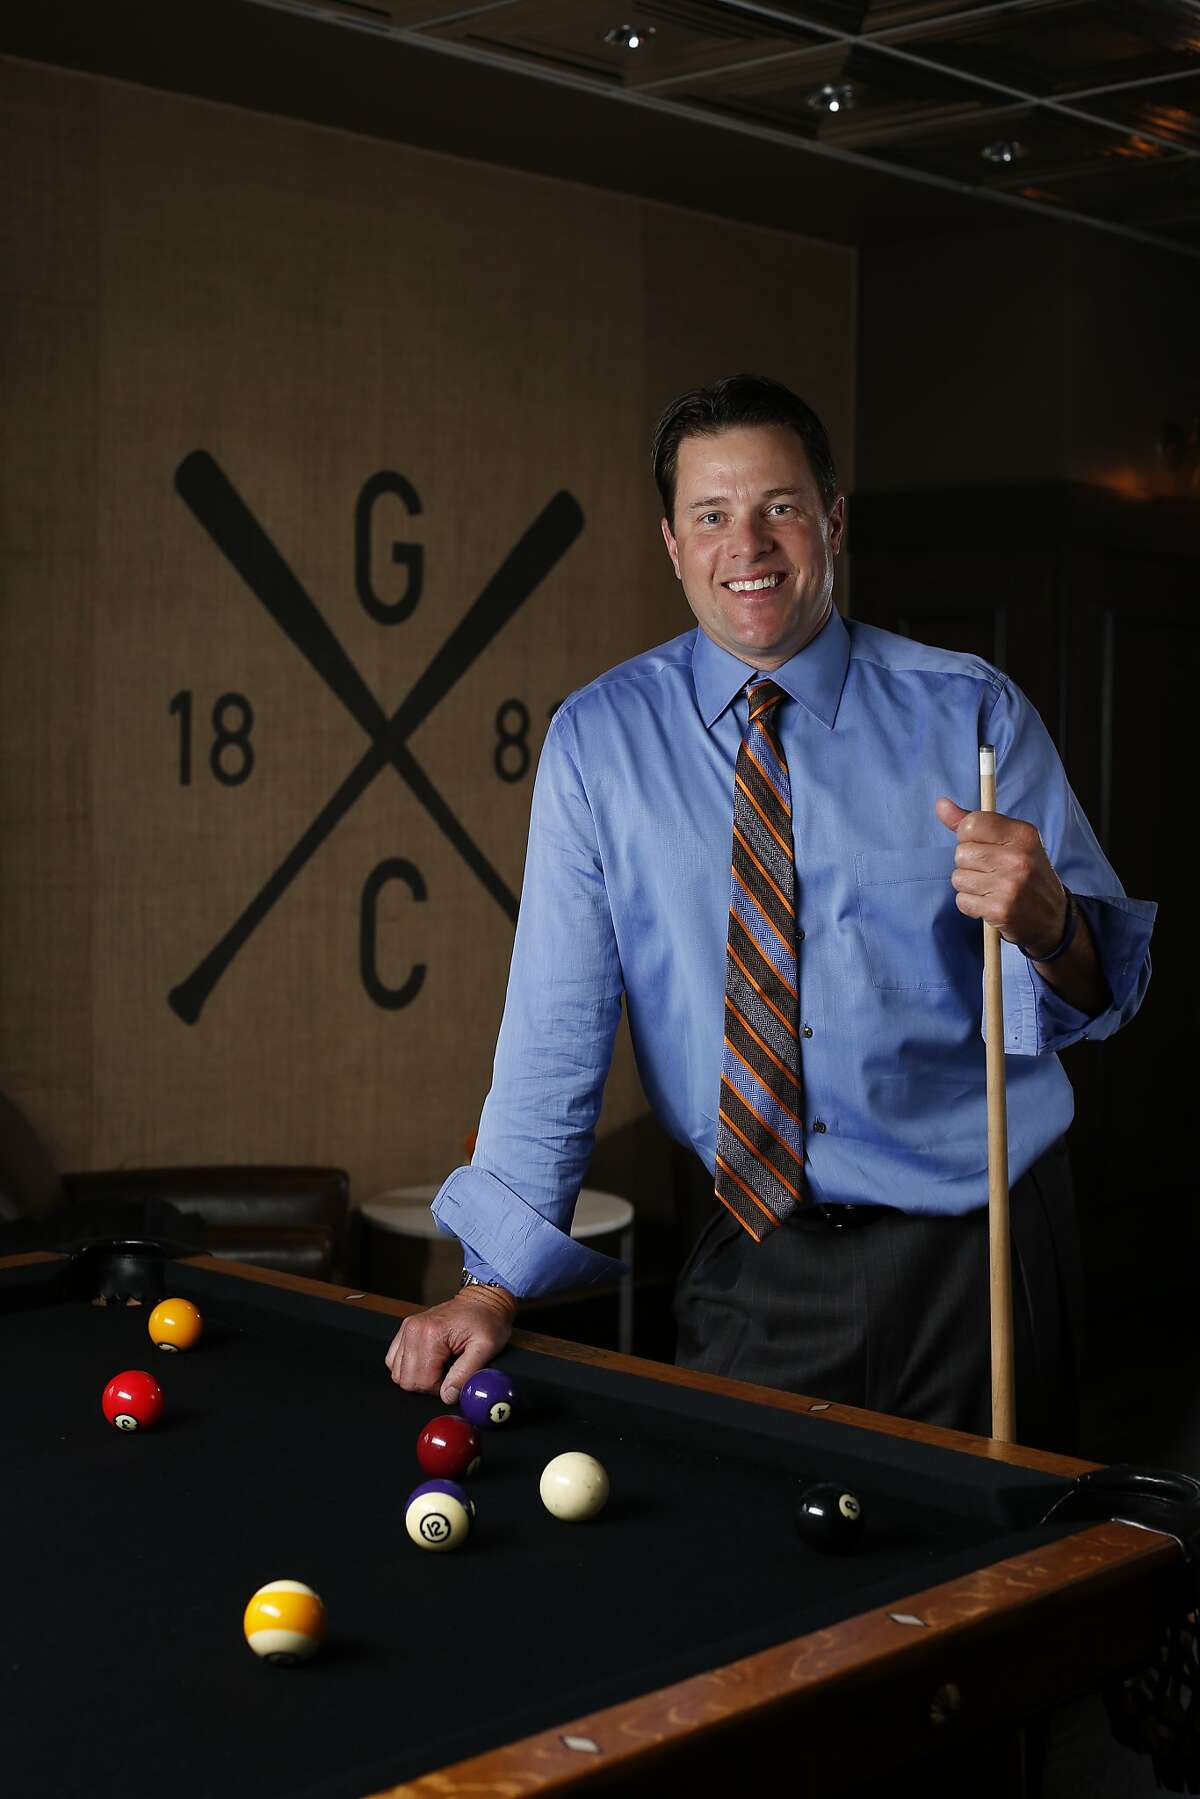 Former San Francisco Giants player JT Snow stands for a portrait at The Gotham Club, a new members-only club inside AT&T Park named after the original team that eventually became the Giants in San Francisco, Calif. on Tuesday, March 25, 2014.